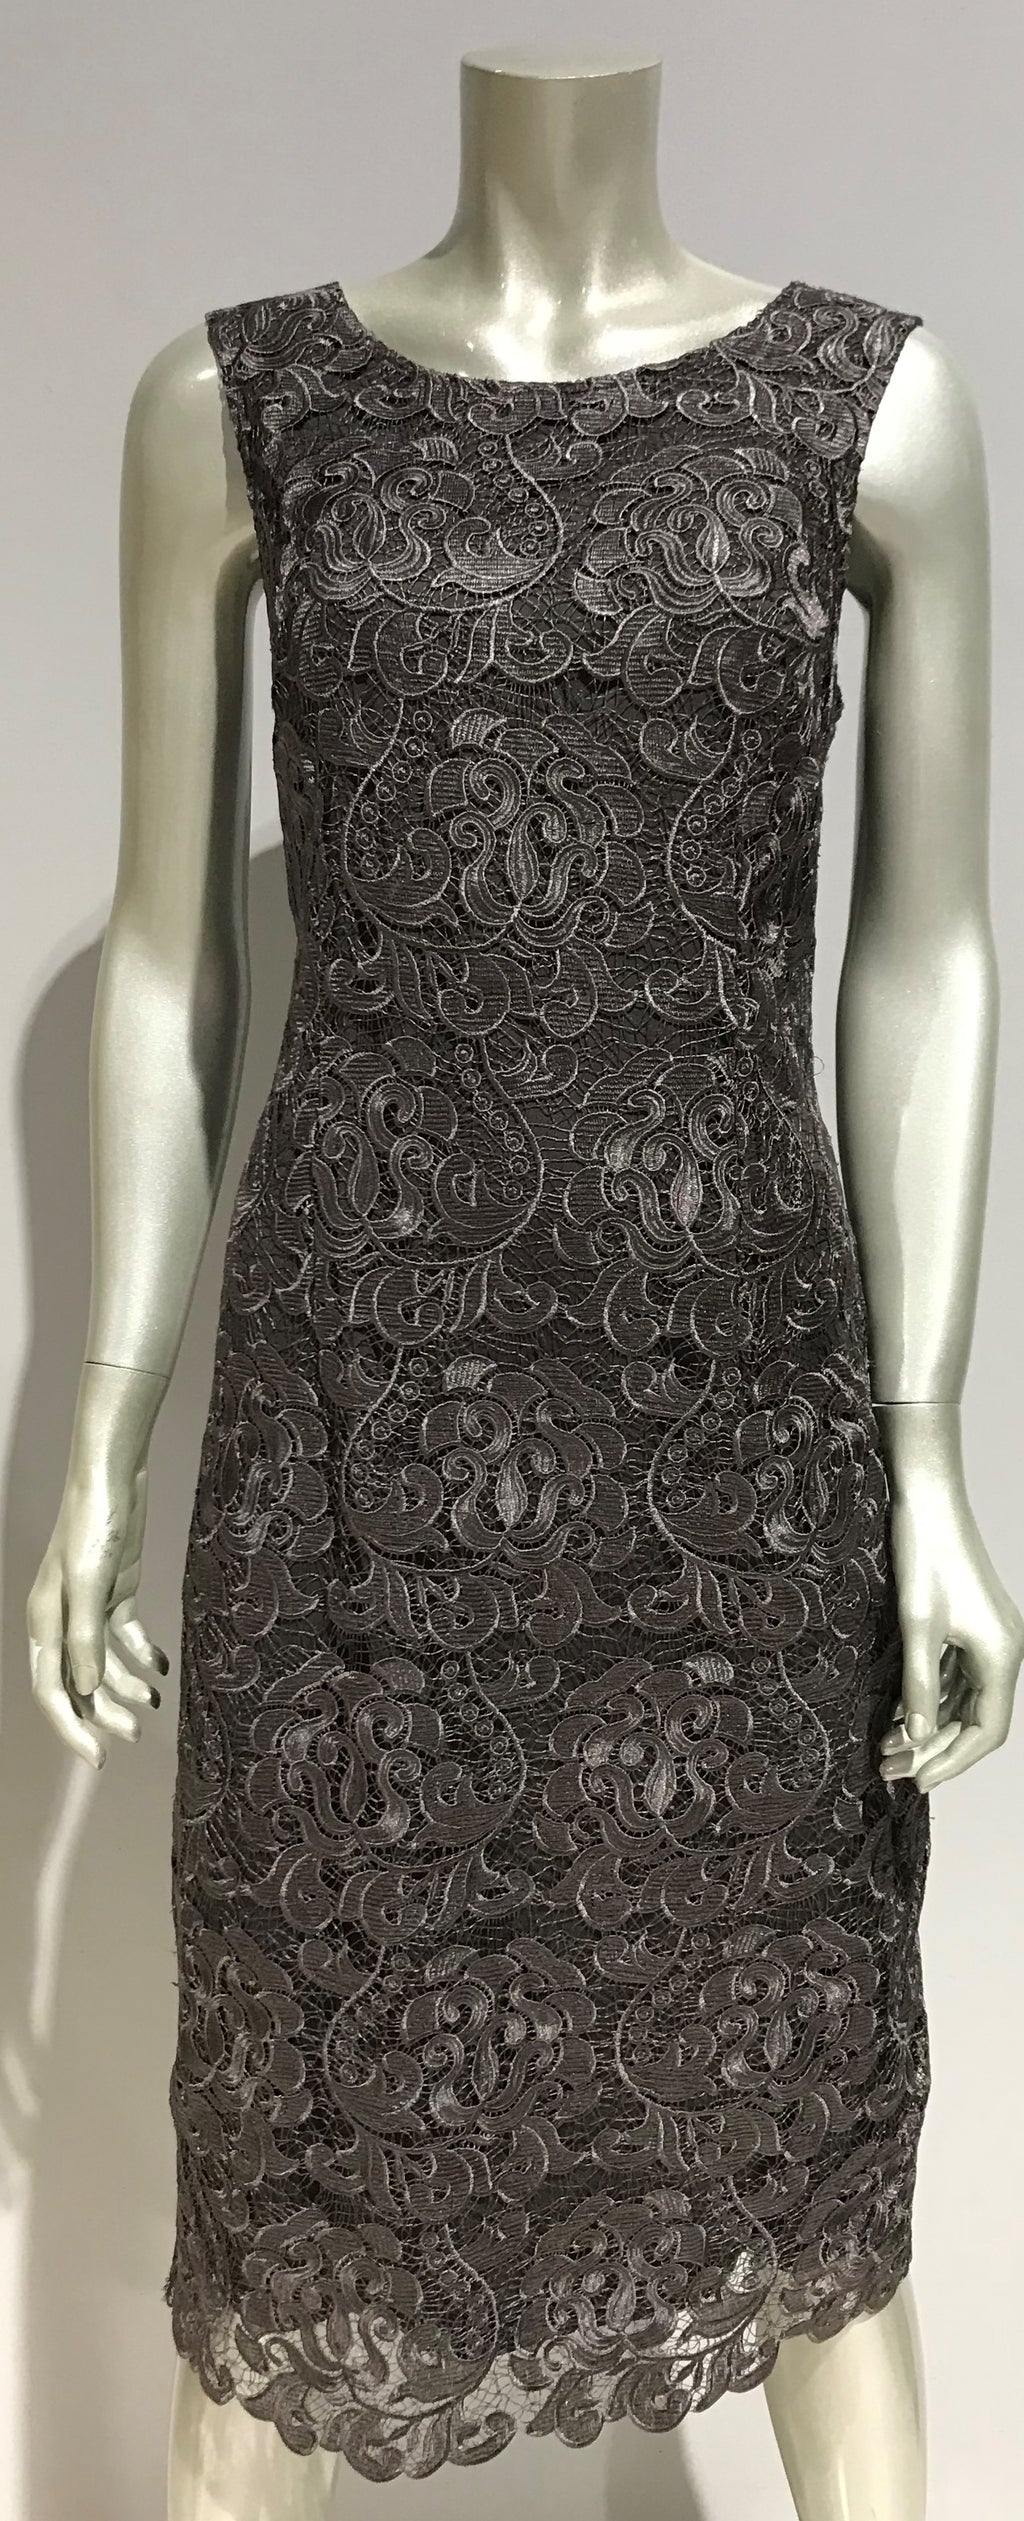 Yesadress sleeveless lace dress IN Silver or Navy - Cardigan over is separate to dress Y223